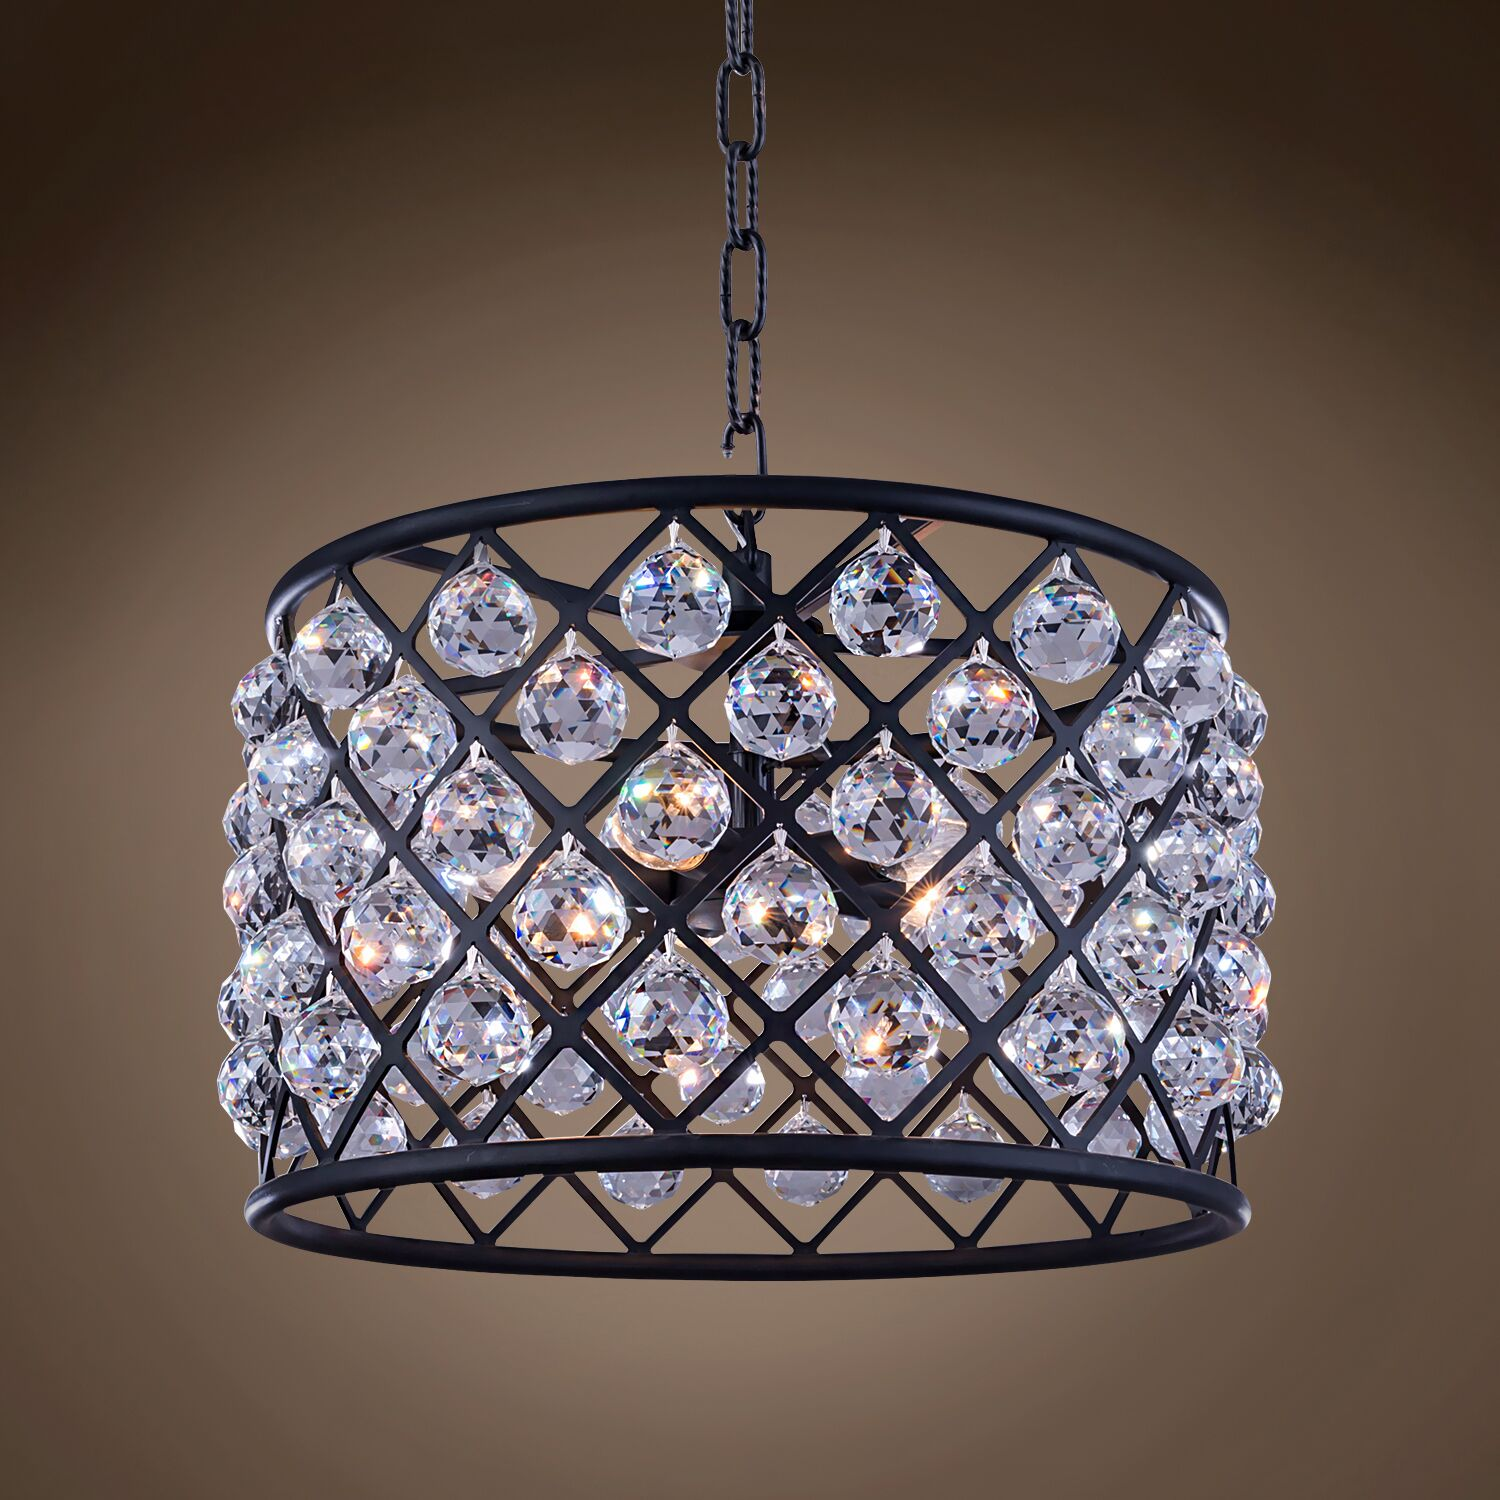 Lulsgate 6-Light Chandelier Shade Color: Clear, Finish: Gray, Bulb Type: LED